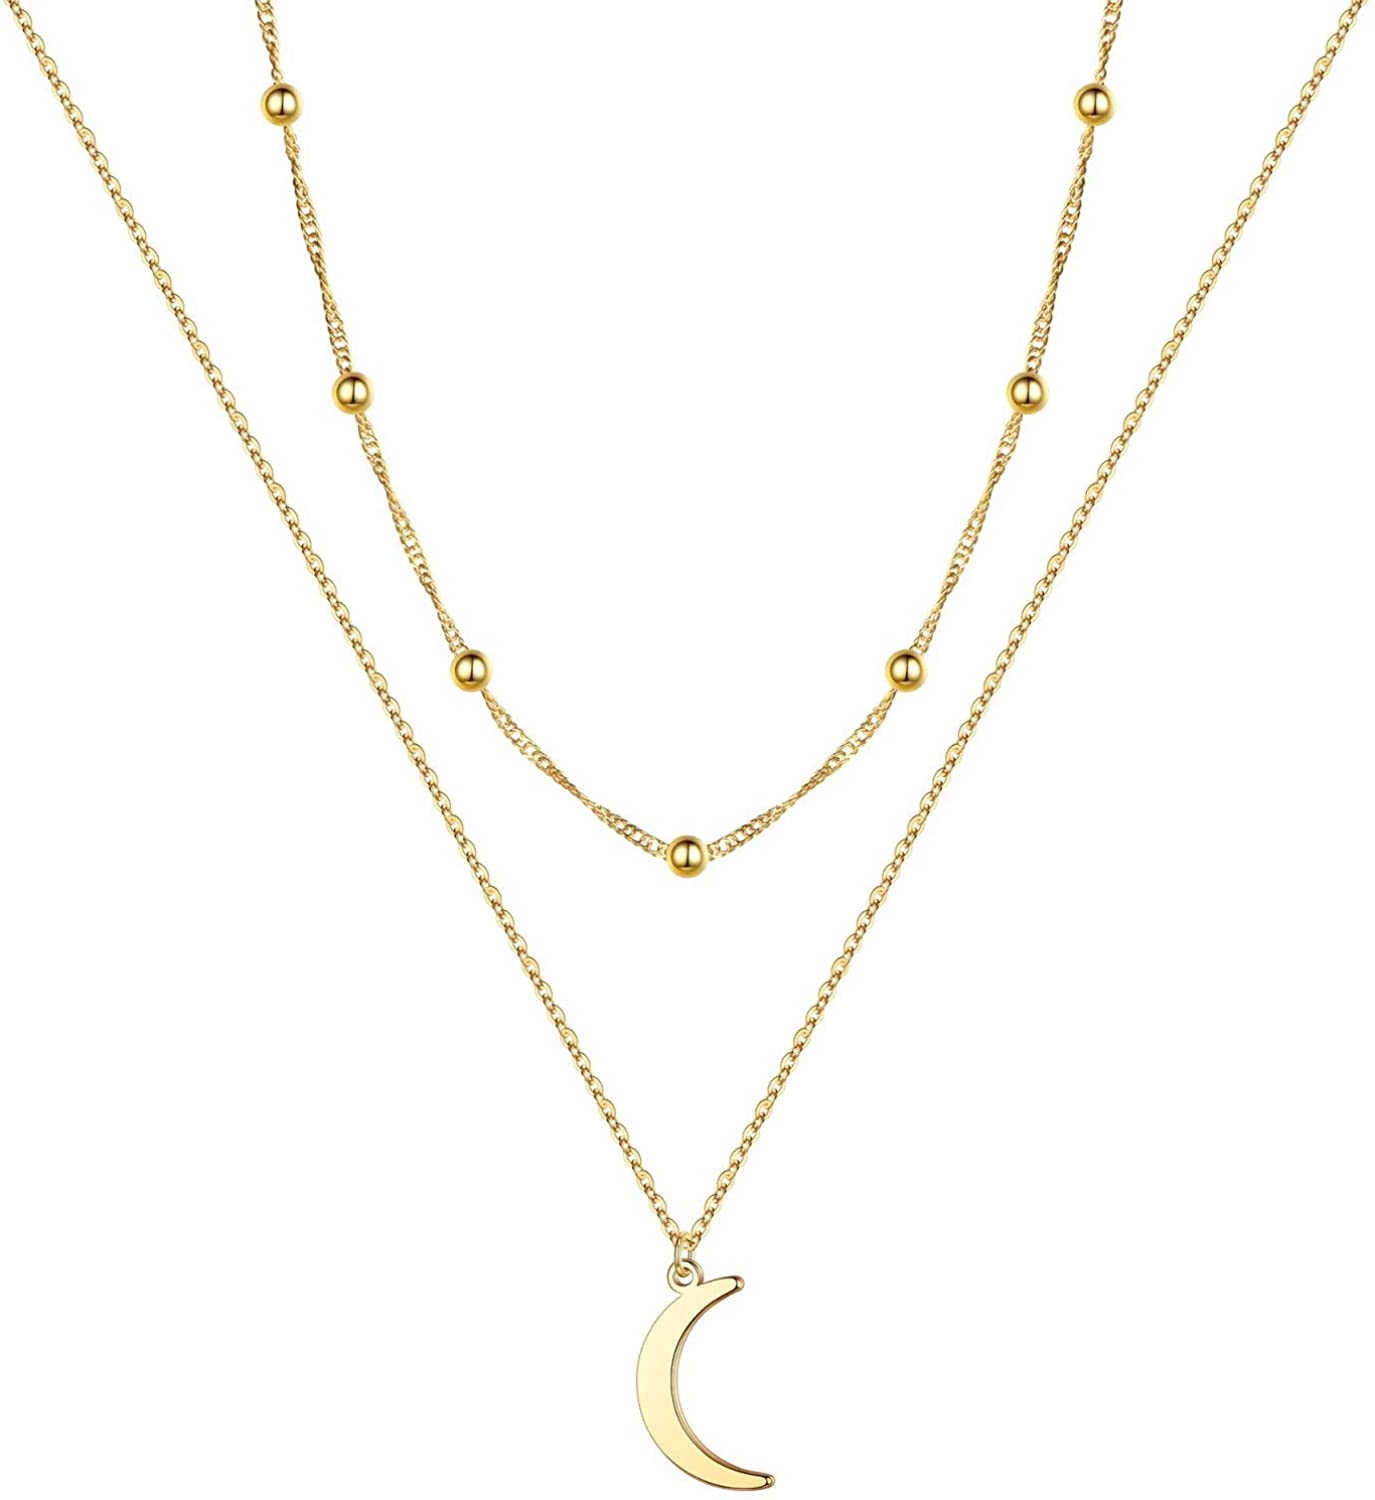 Turandoss Gold Moon Necklaces for Women, 14K Gold Plated Dainty CZ Hammered Coin Full Karma Circle New Crescent Moon Phase Pendant Layered Moon Necklaces for Women Girls Jewelry